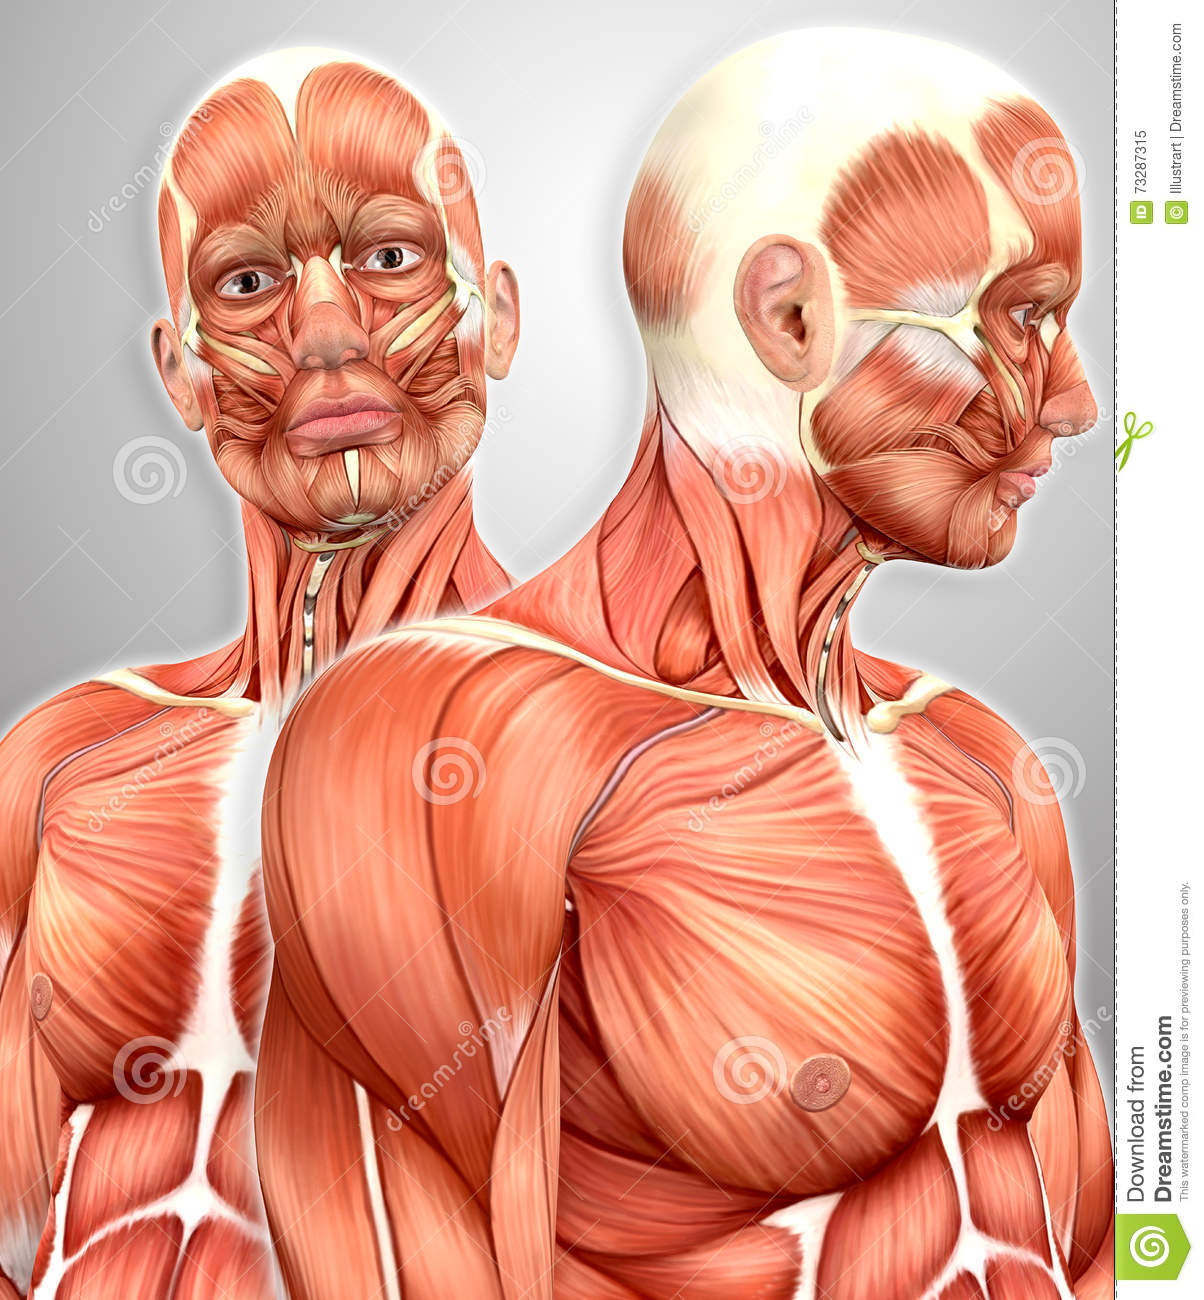 3d Male Muscular Anatomy With Side View Stock Illustration ...